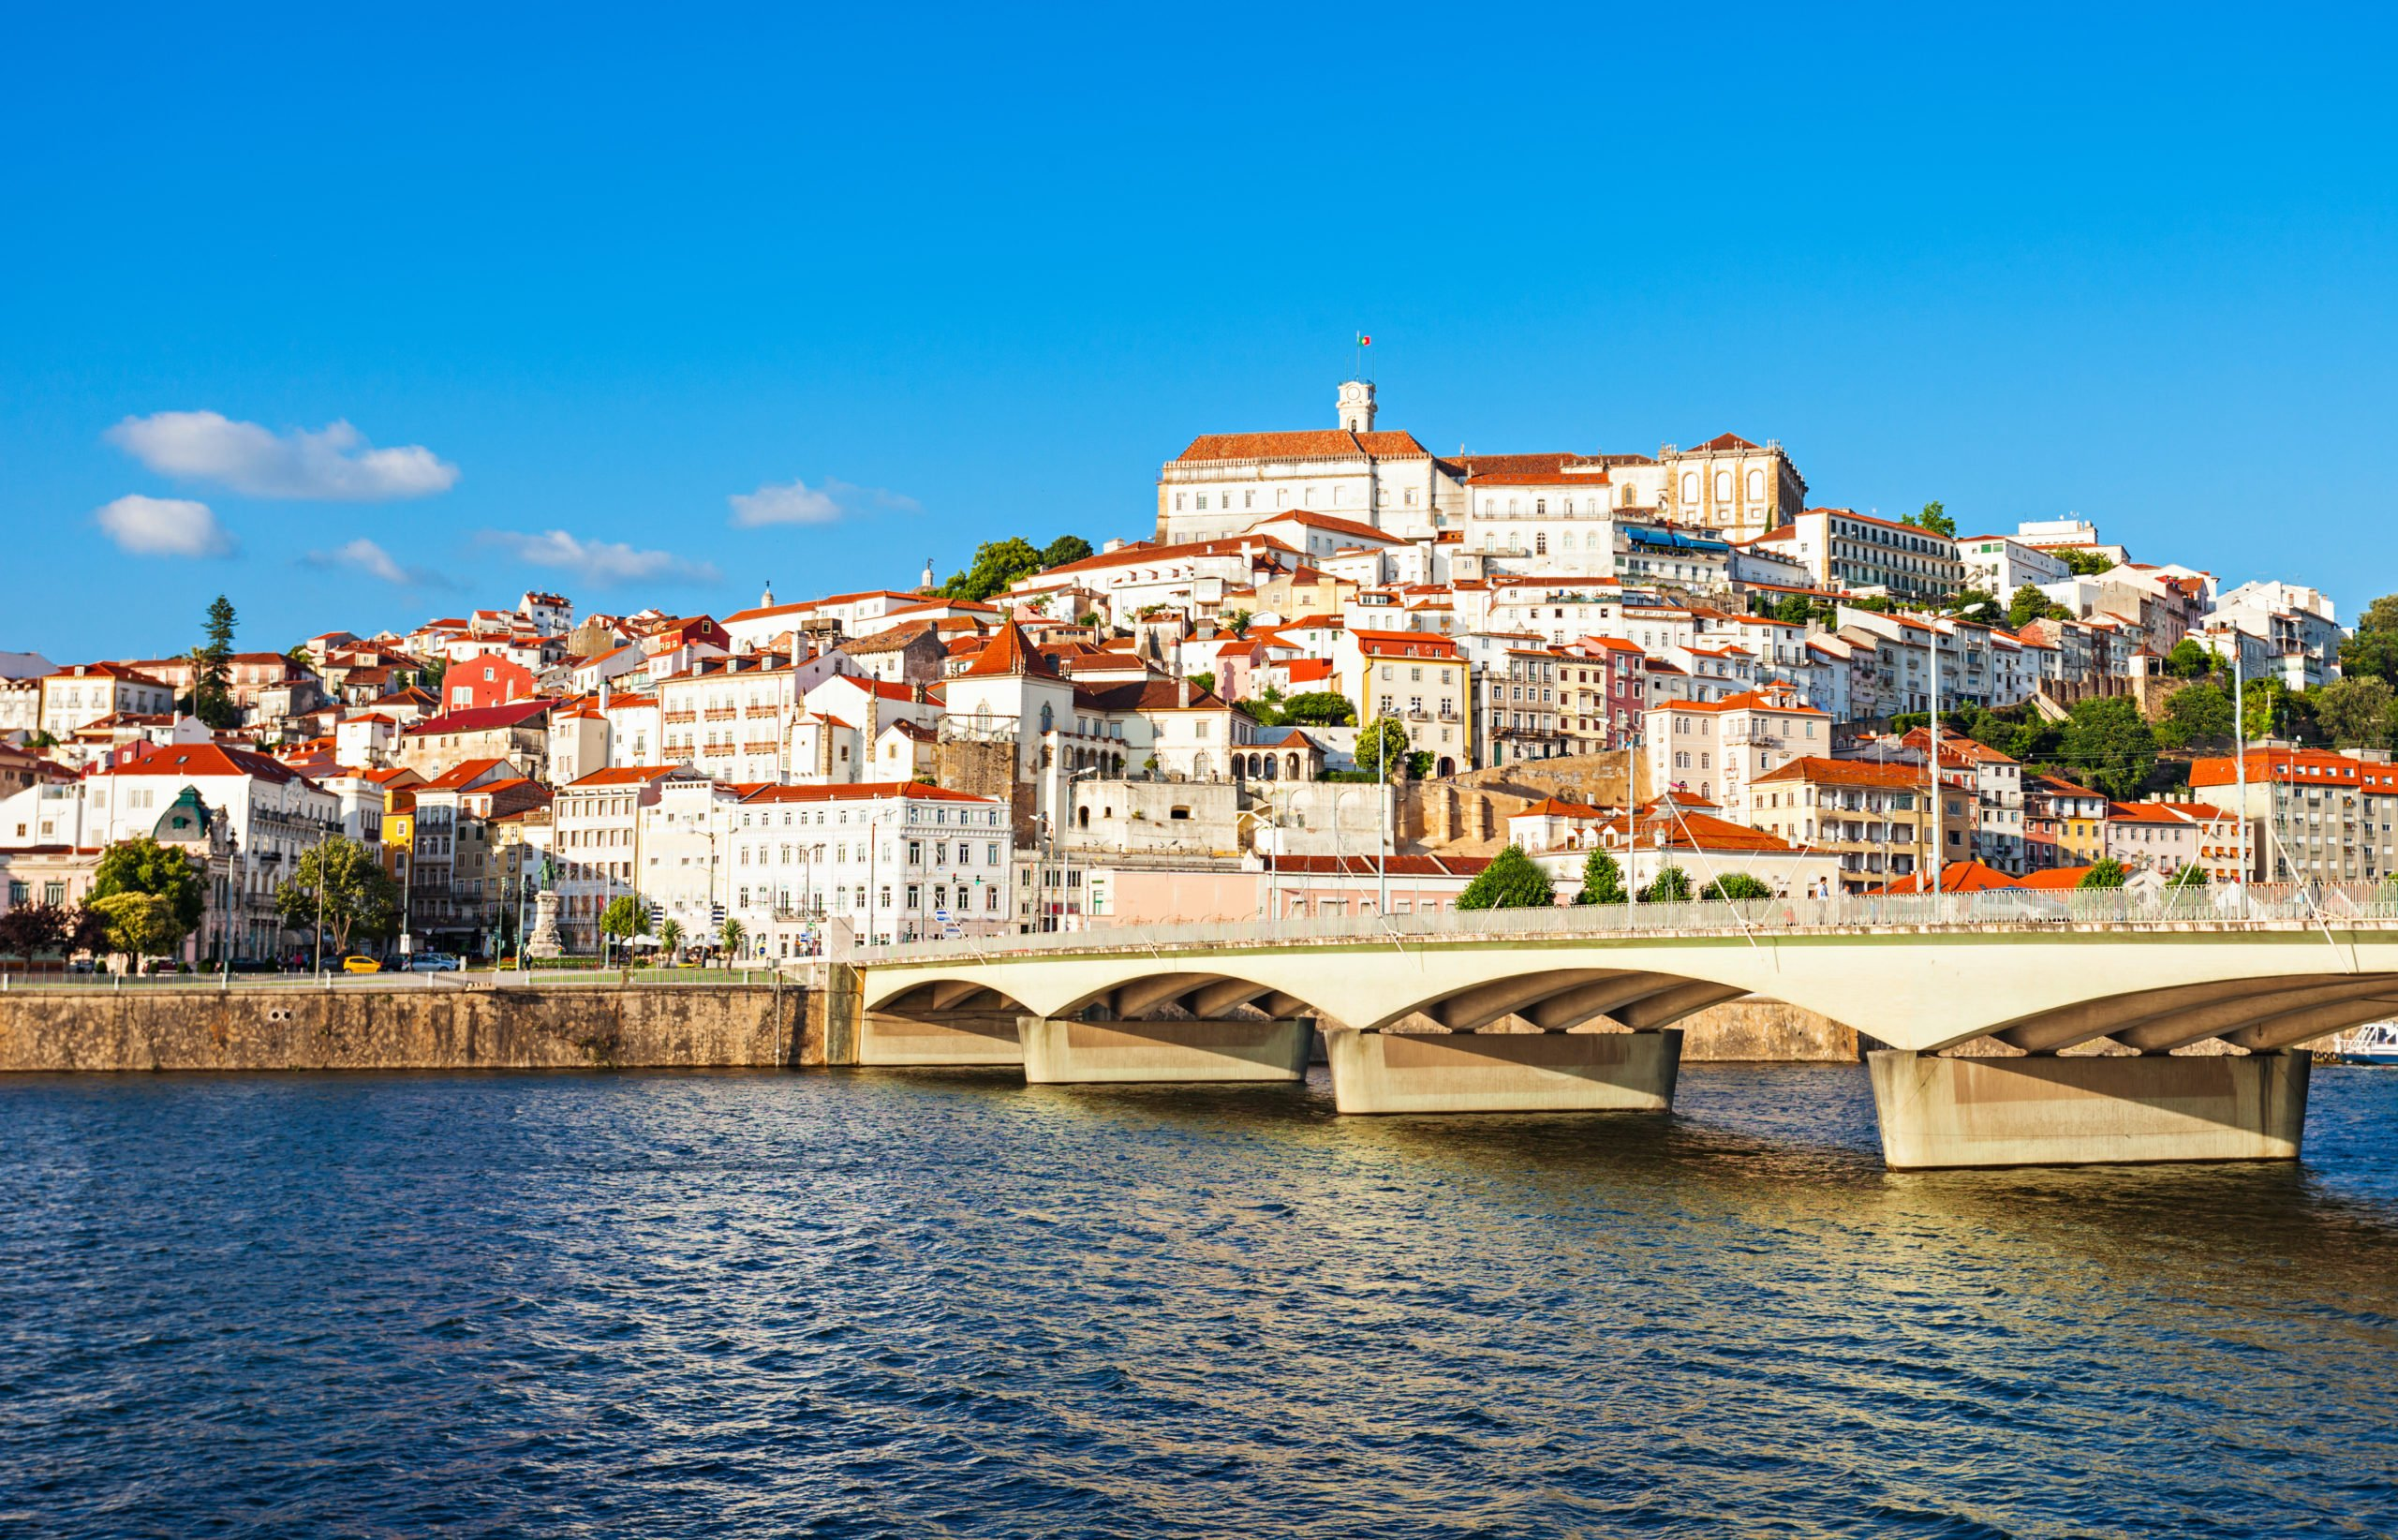 Discover The Picturesque Town Of Coimbra On Our Highlights Of Portugal 11 Day Package Tour